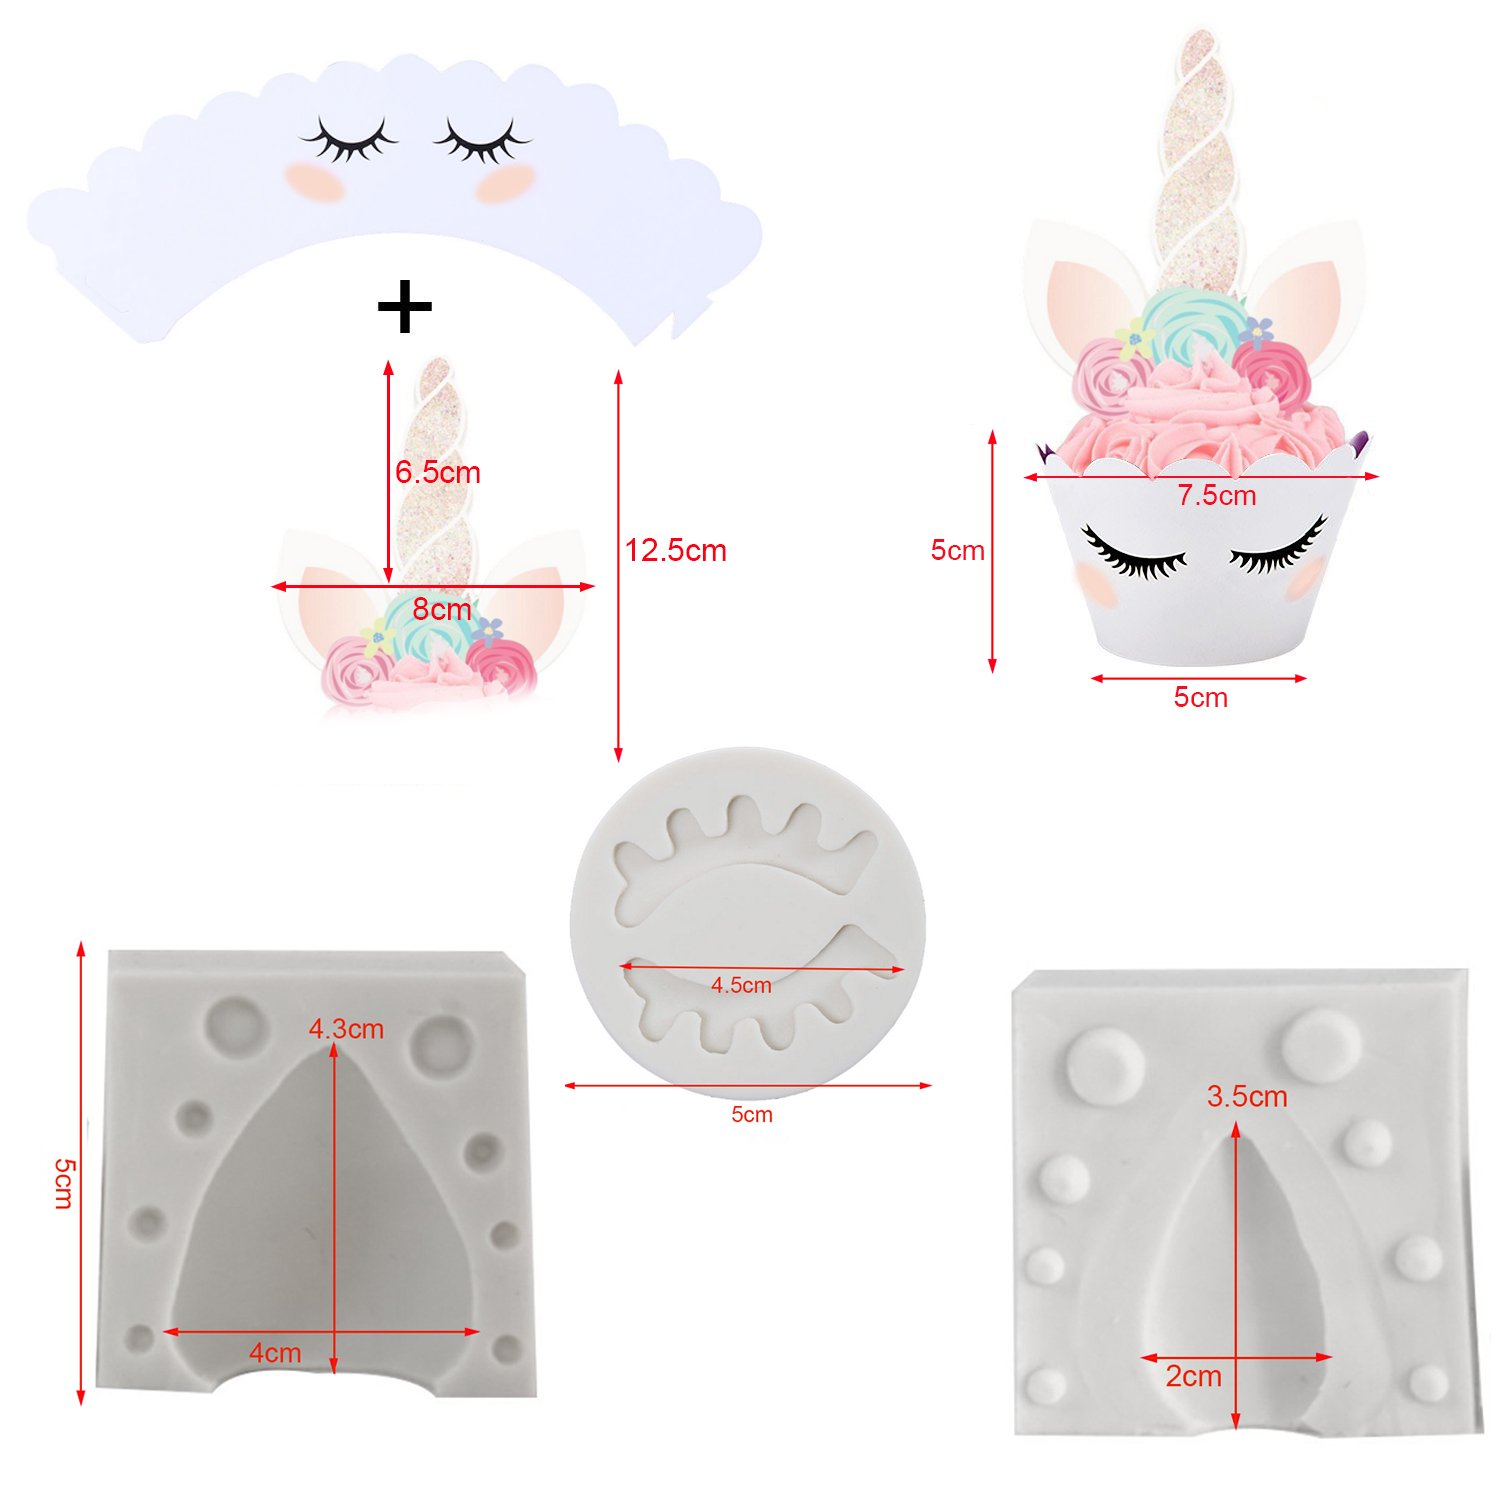 Kabi 5PCS Unicorn Silicone Cake Toppers Mold Set for Baking Cake Decoration Making Sugar Craft Candy Chocolate,with Unicorn Cupcake Toppers & Wrappers Double Sided 12 Sets by Kabi (Image #3)